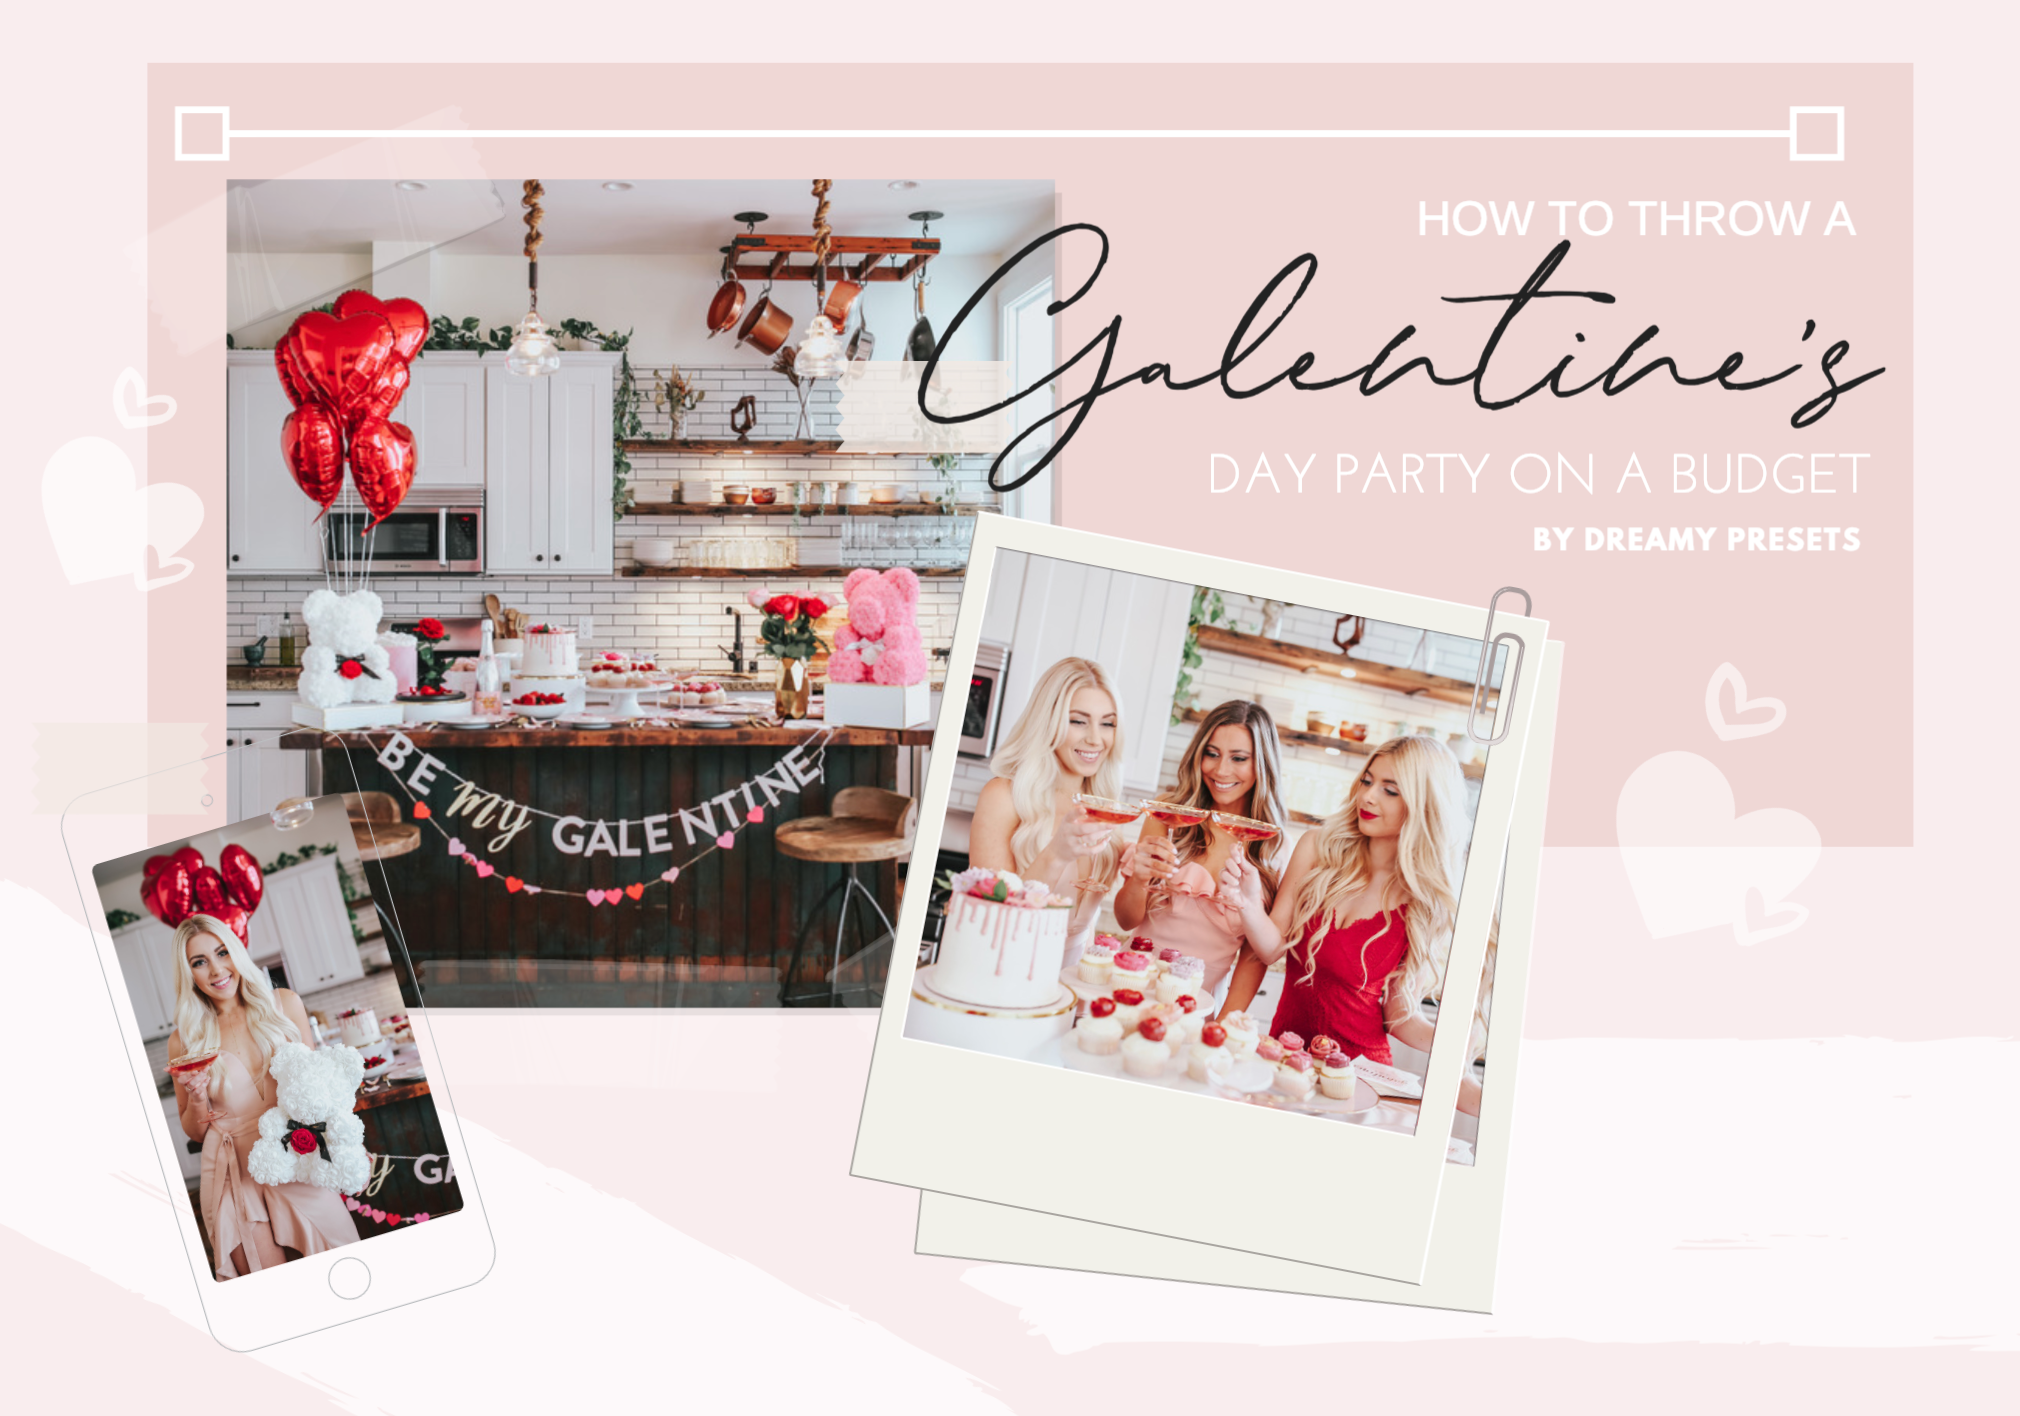 How To Throw A Fabulous Galentine S Party On A Budget Dreamy Presets